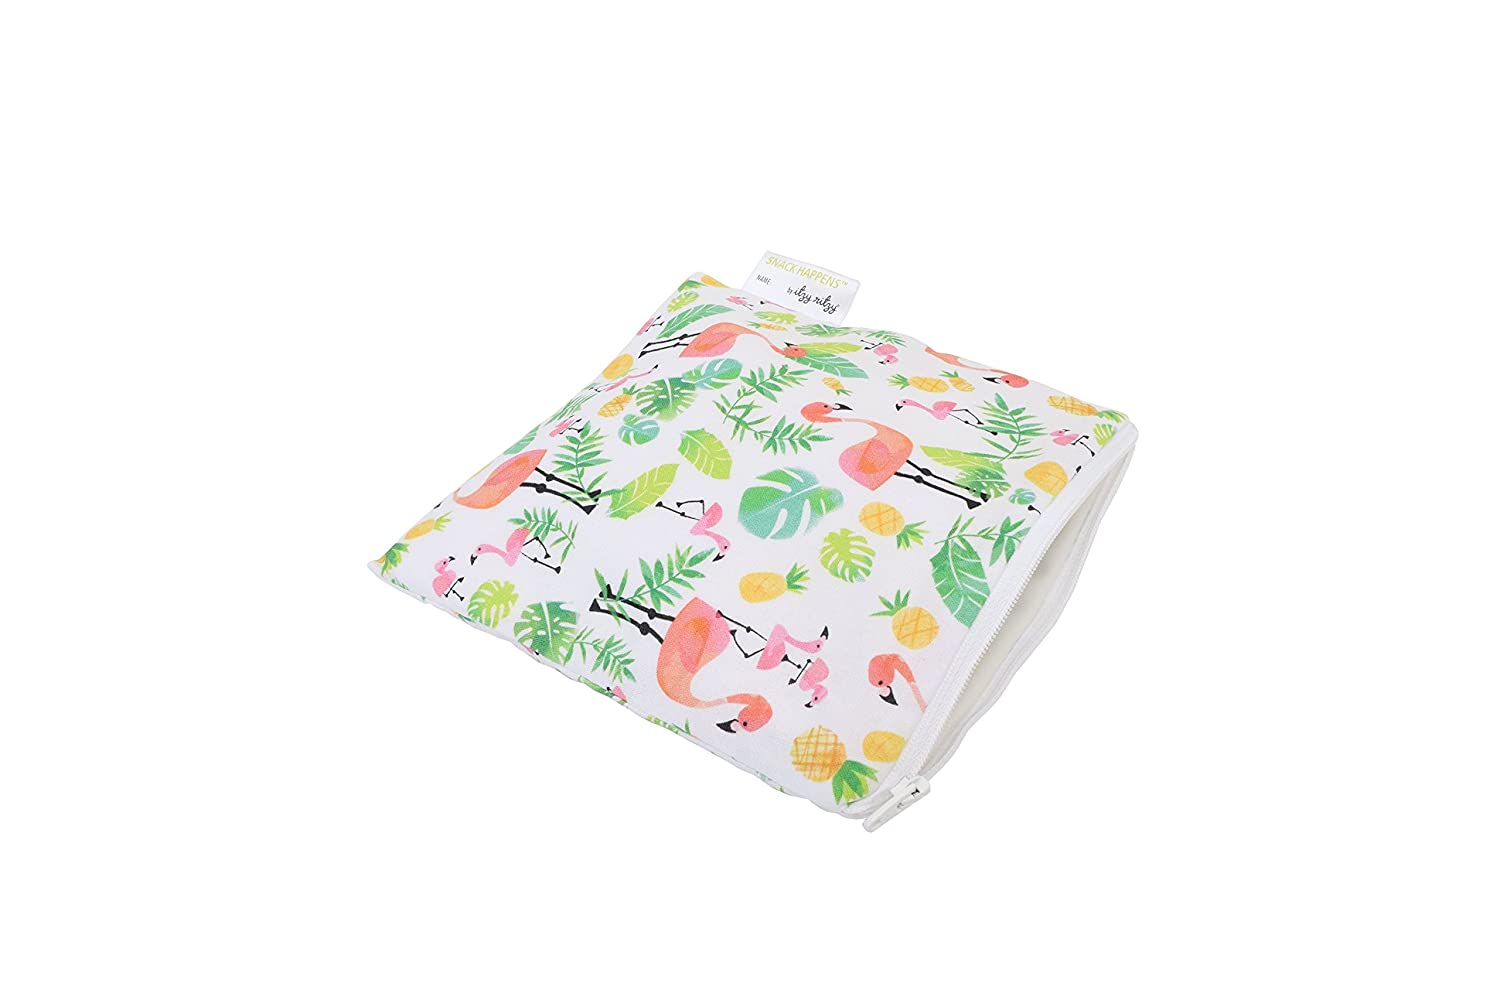 Itzy Ritzy IR-SWB8308 Snack Happens Reusable Snack and Everything Bag, Flamingo Flock